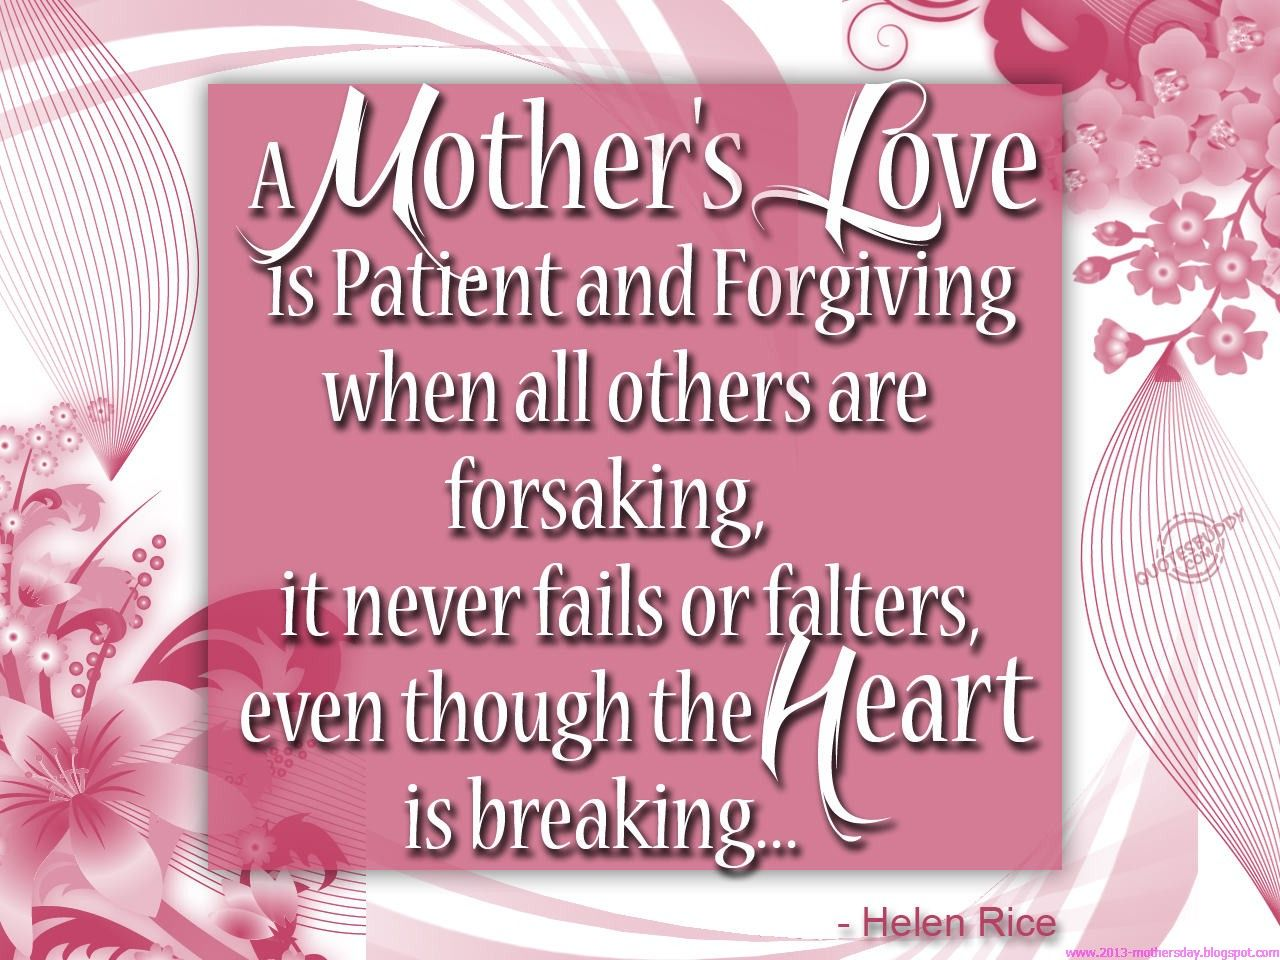 Happy mothers day pictures happy mothers day quotes and wishes happy mothers day pictures happy mothers day quotes and wishes cards mothers day 2013 kristyandbryce Image collections